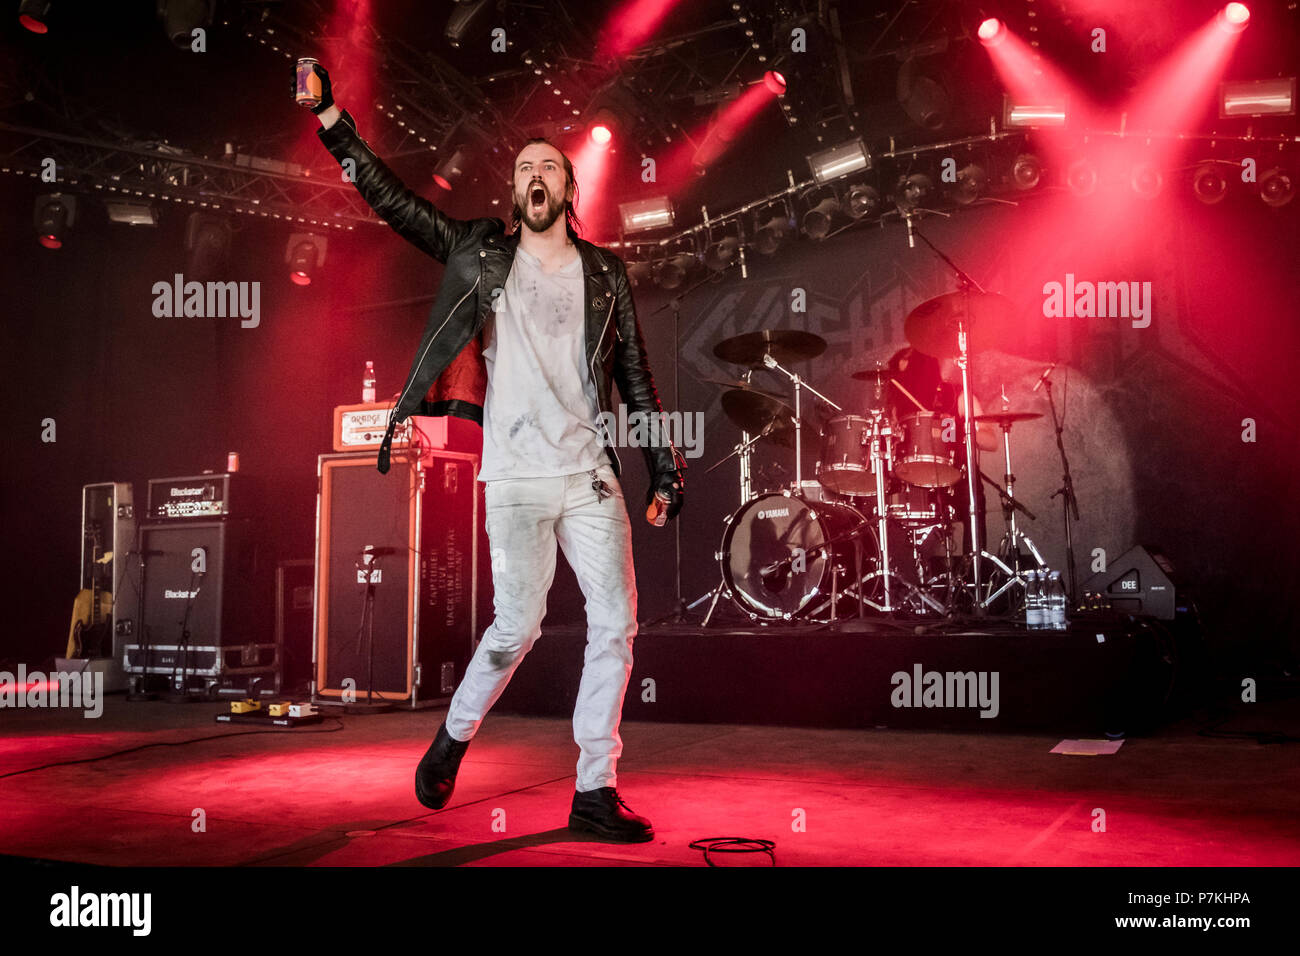 Roskilde, Denmark. 6th July 2018. The American extreme metal band Skeletonwitch performs a live concert at during the Danish music festival Roskilde Festival 2018. Here vocalist Adam Clemans is seen live on stage. (Photo credit: Gonzales Photo - Kim M. Leland). Credit: Gonzales Photo/Alamy Live News - Stock Image